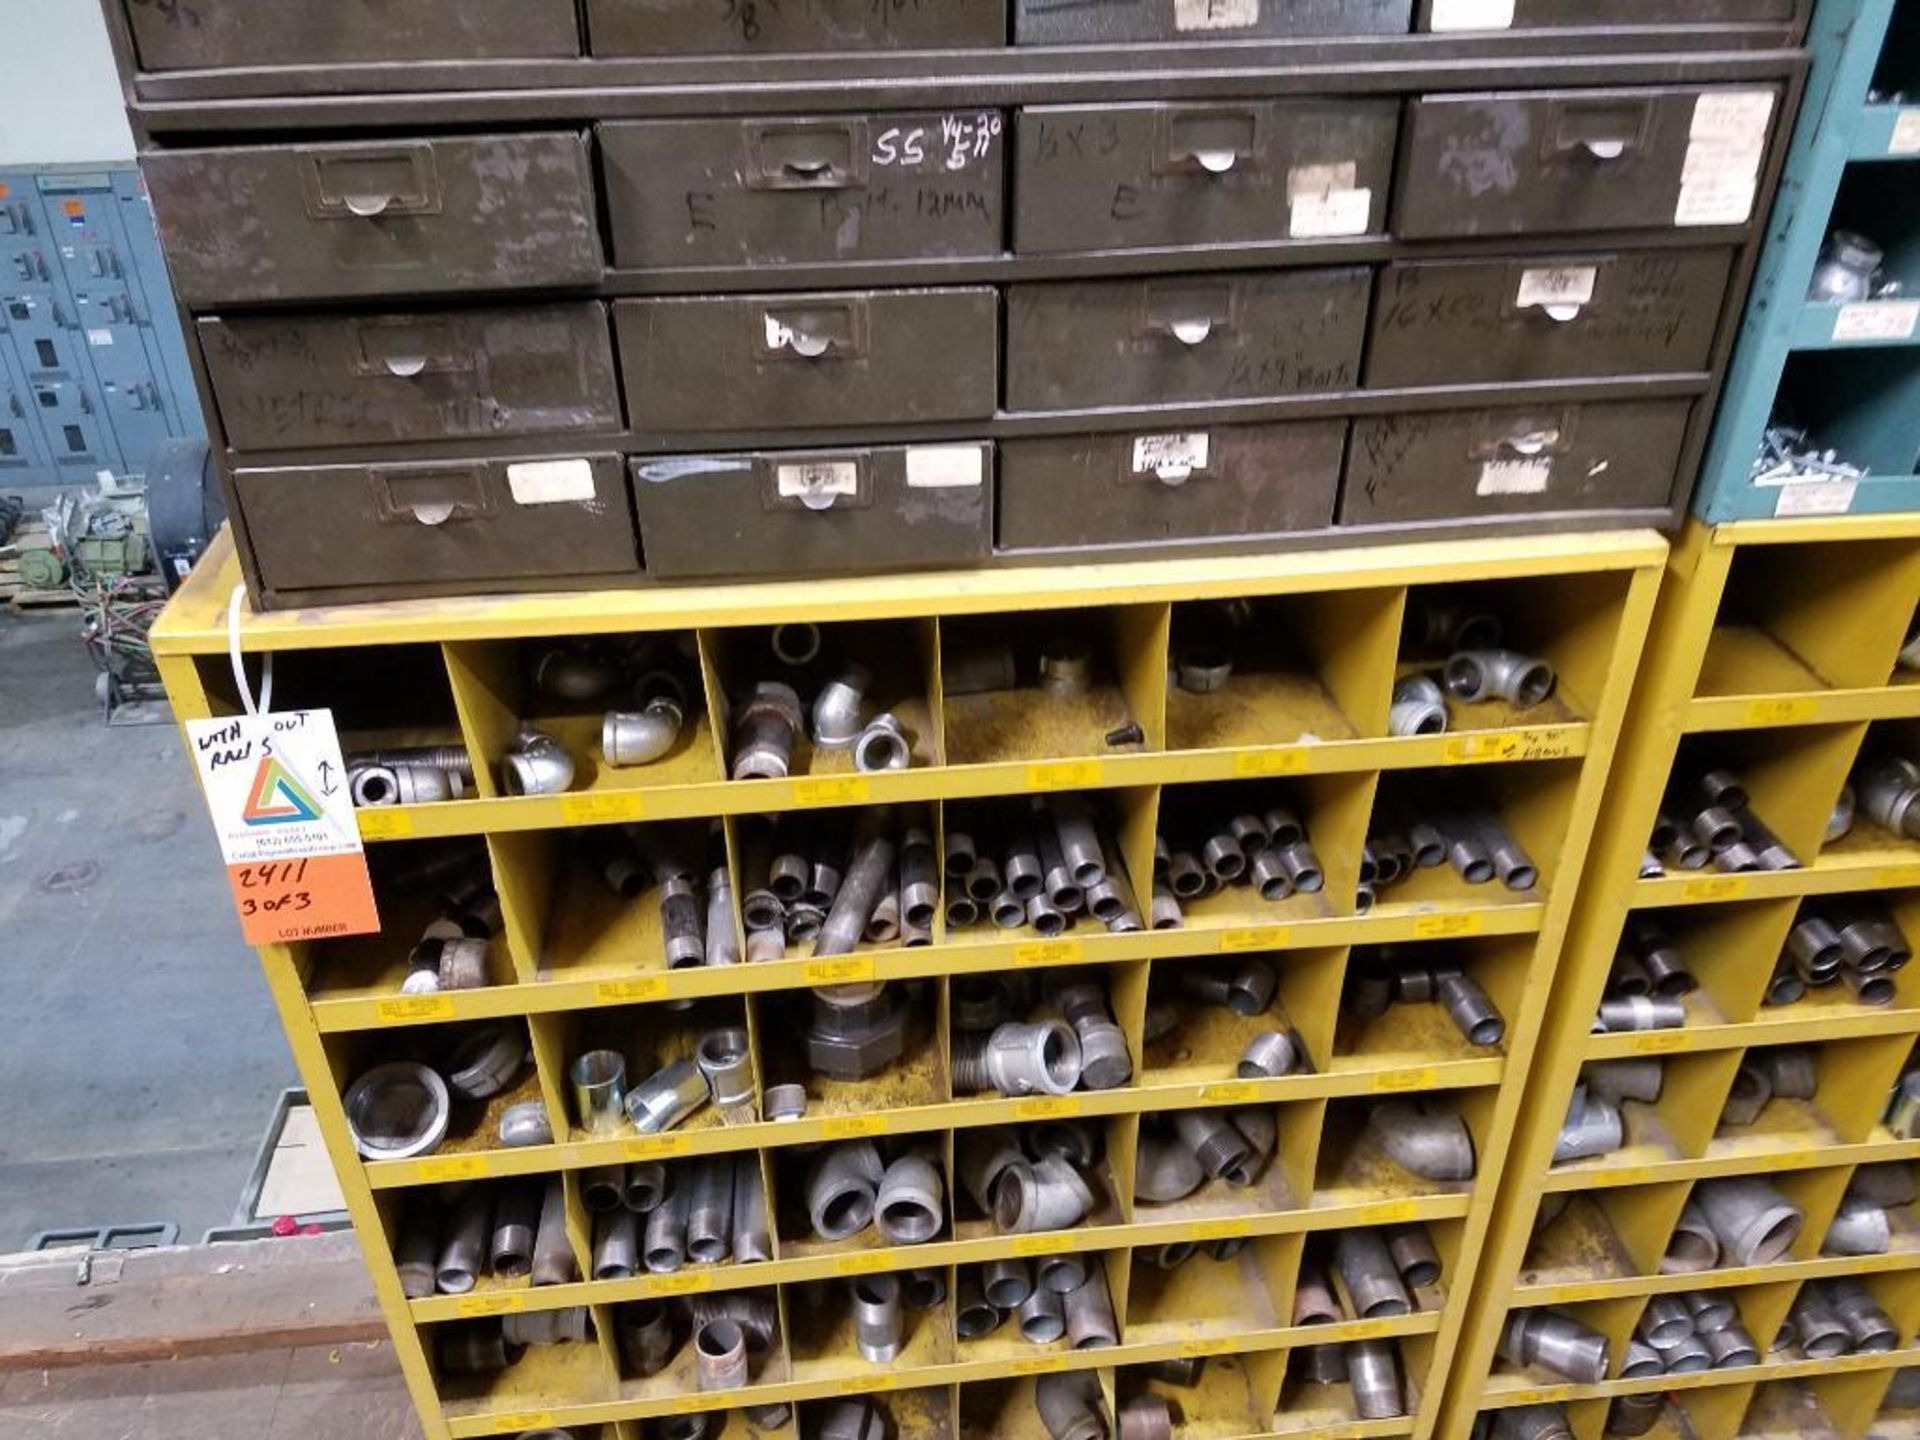 various nuts, bolts, screws, and pipes, storage units not included - Image 9 of 10